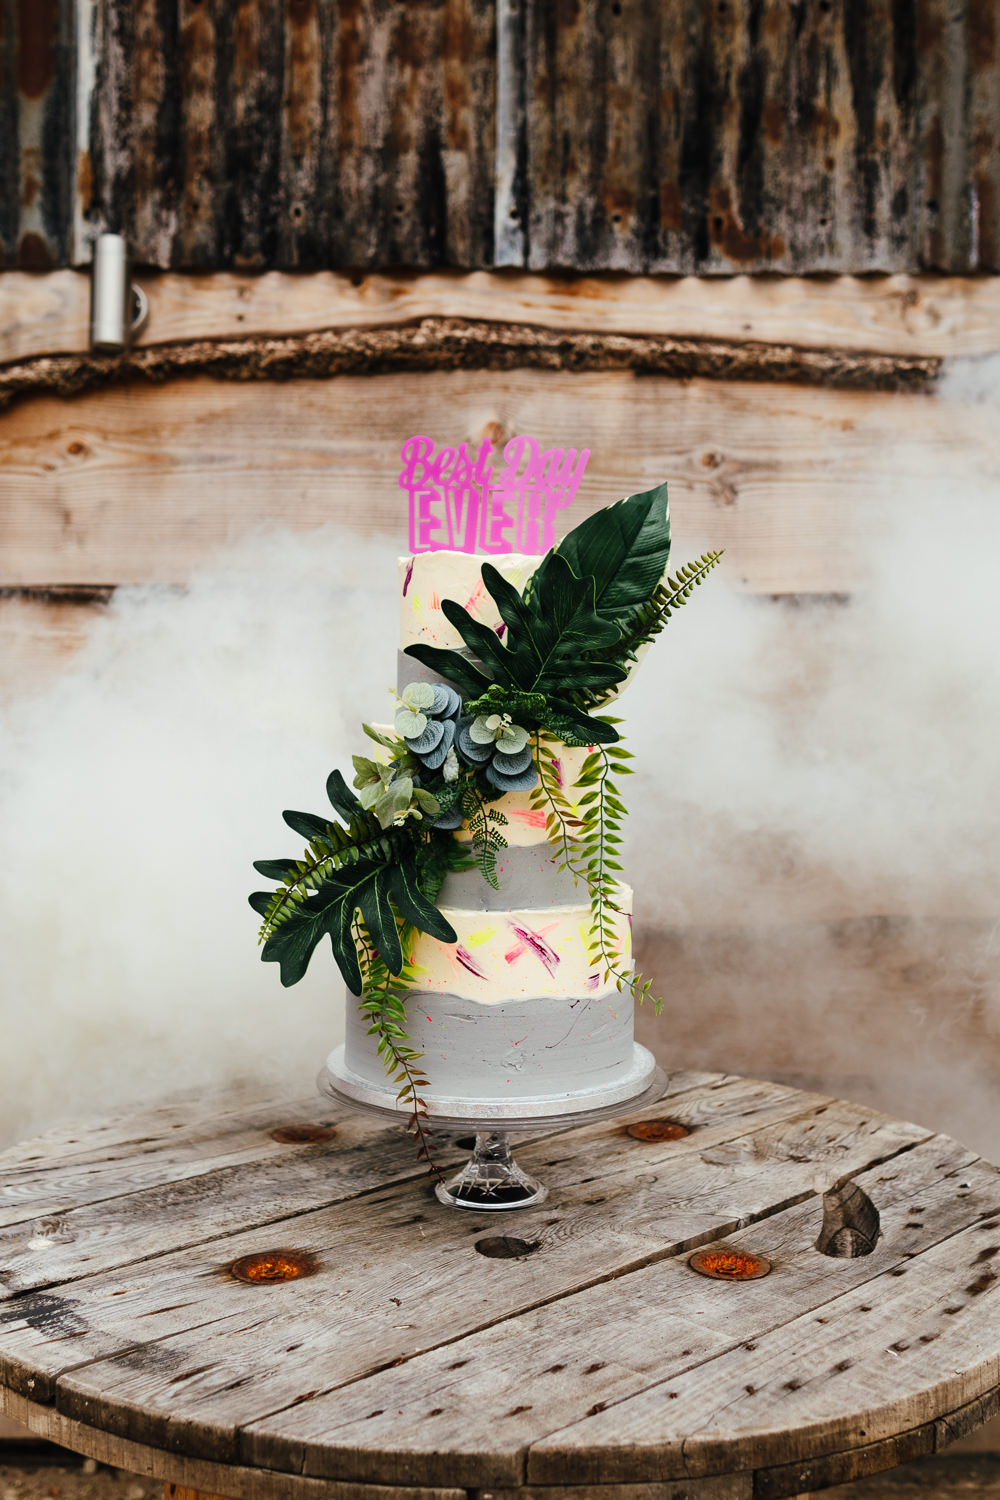 Cake Succulents Topper Grey Colourful Foliage Greenery Tropical Wedding Inspiration Emily Little Photography